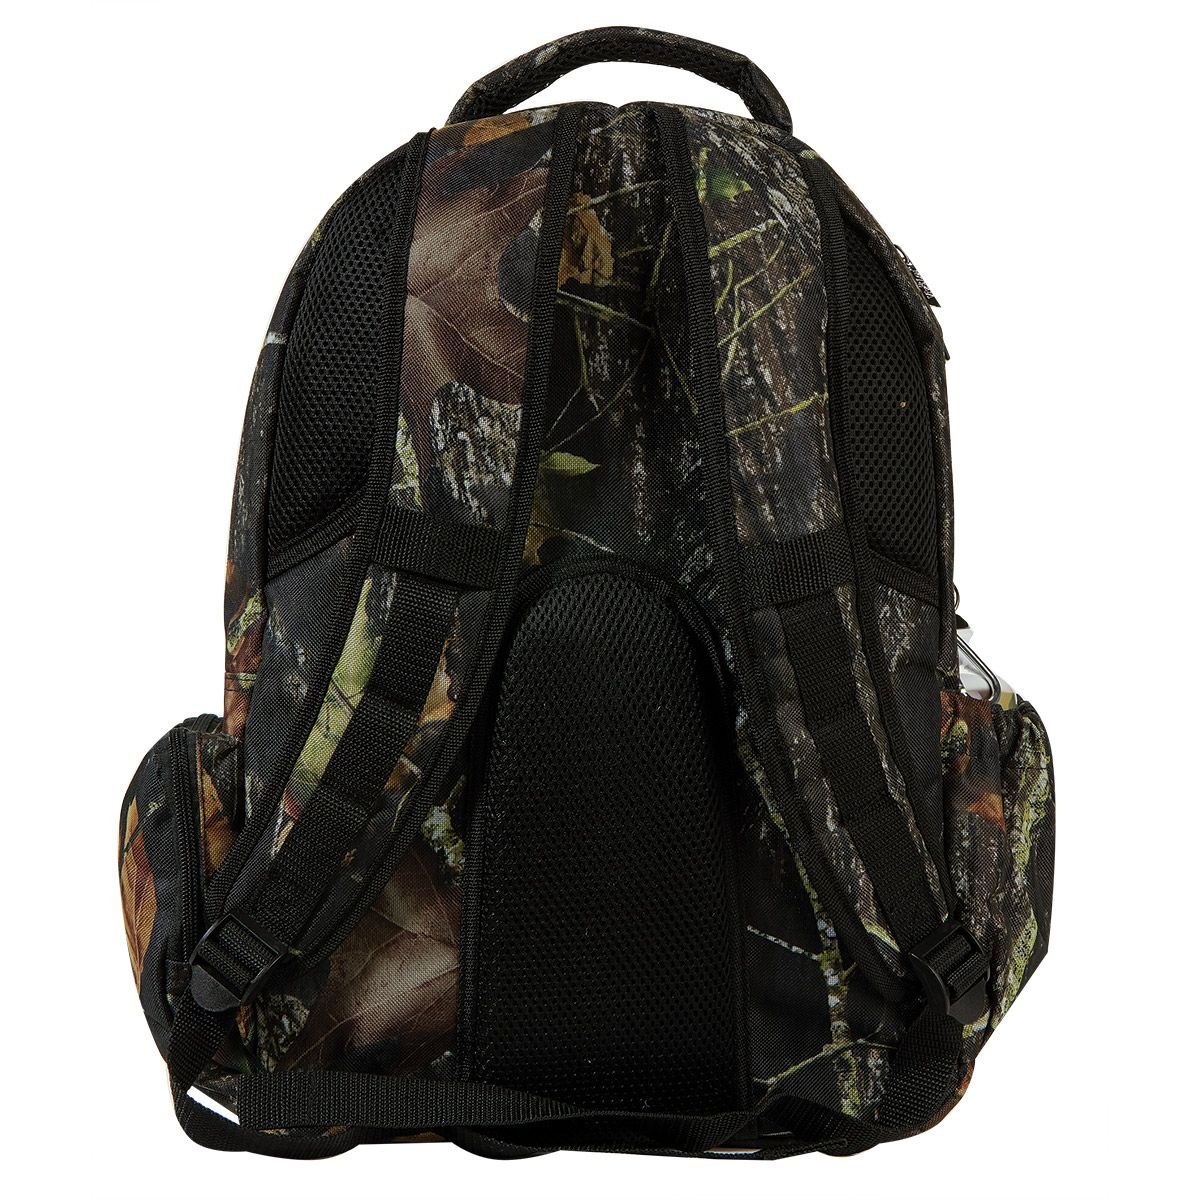 Woods Personalized Backpack